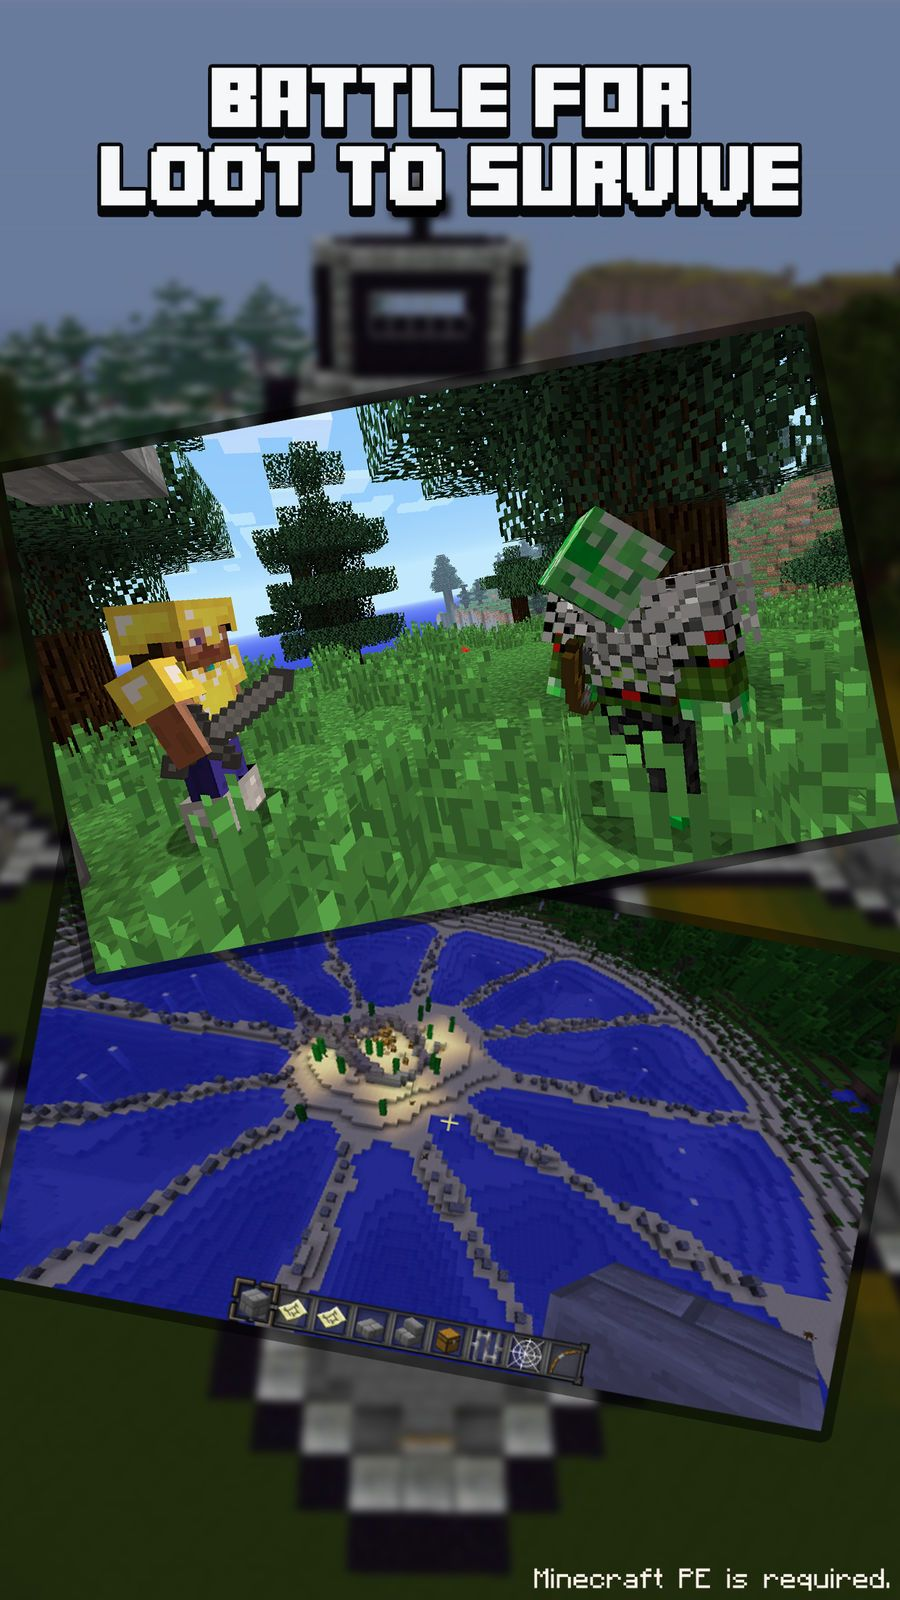 Hunger Games Servers For Minecraft Pe Online Nuapps Online Entertainment Ios Hunger Games Minecraft Servers For Minecraft Pe Hunger Games